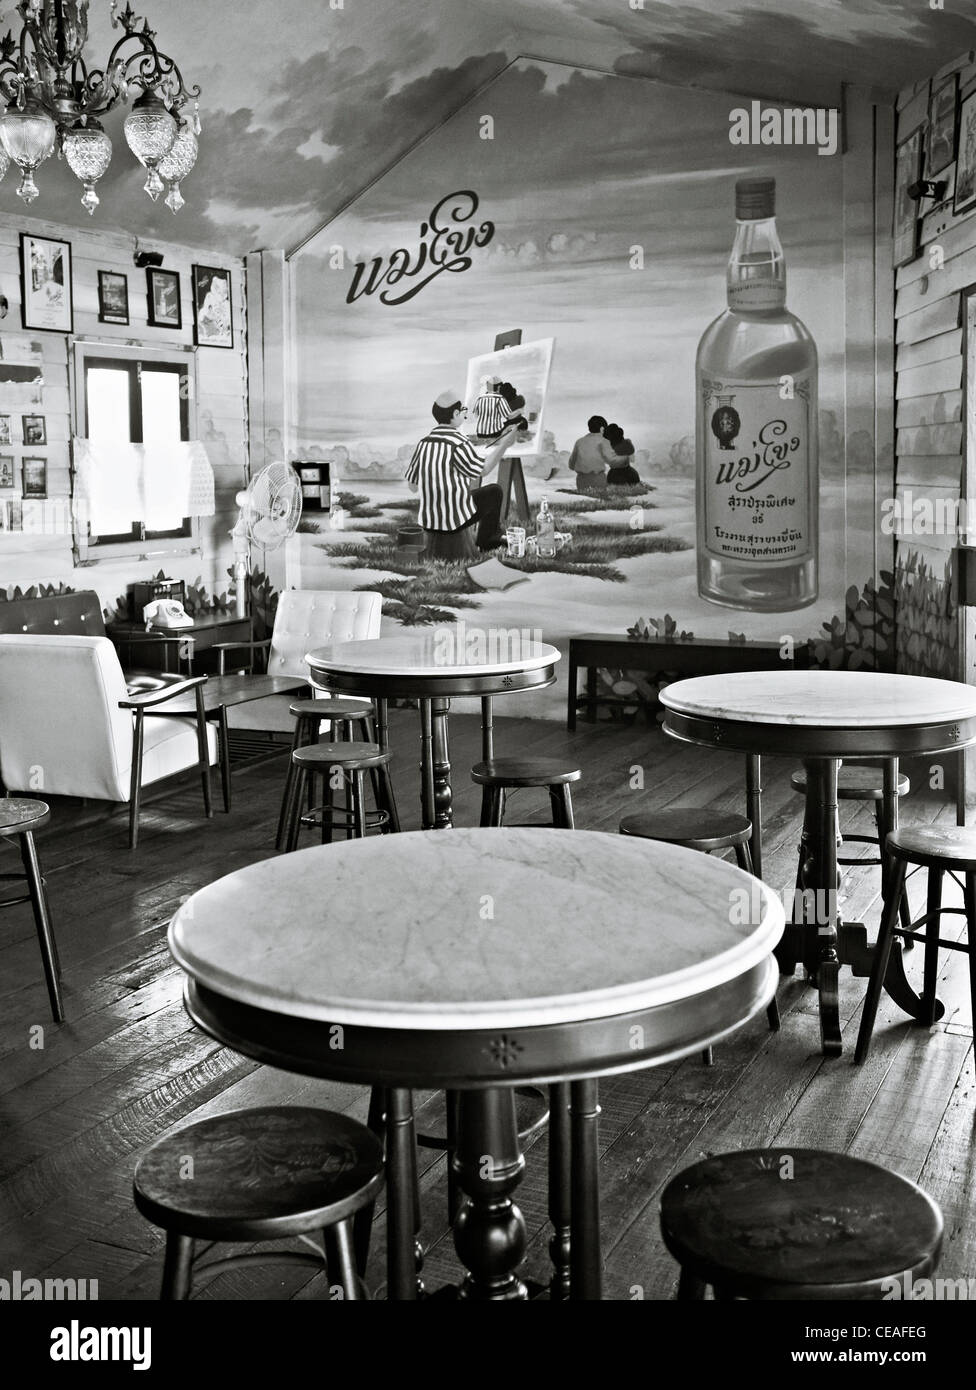 1950s bar photos 1950s bar images alamy. Black Bedroom Furniture Sets. Home Design Ideas